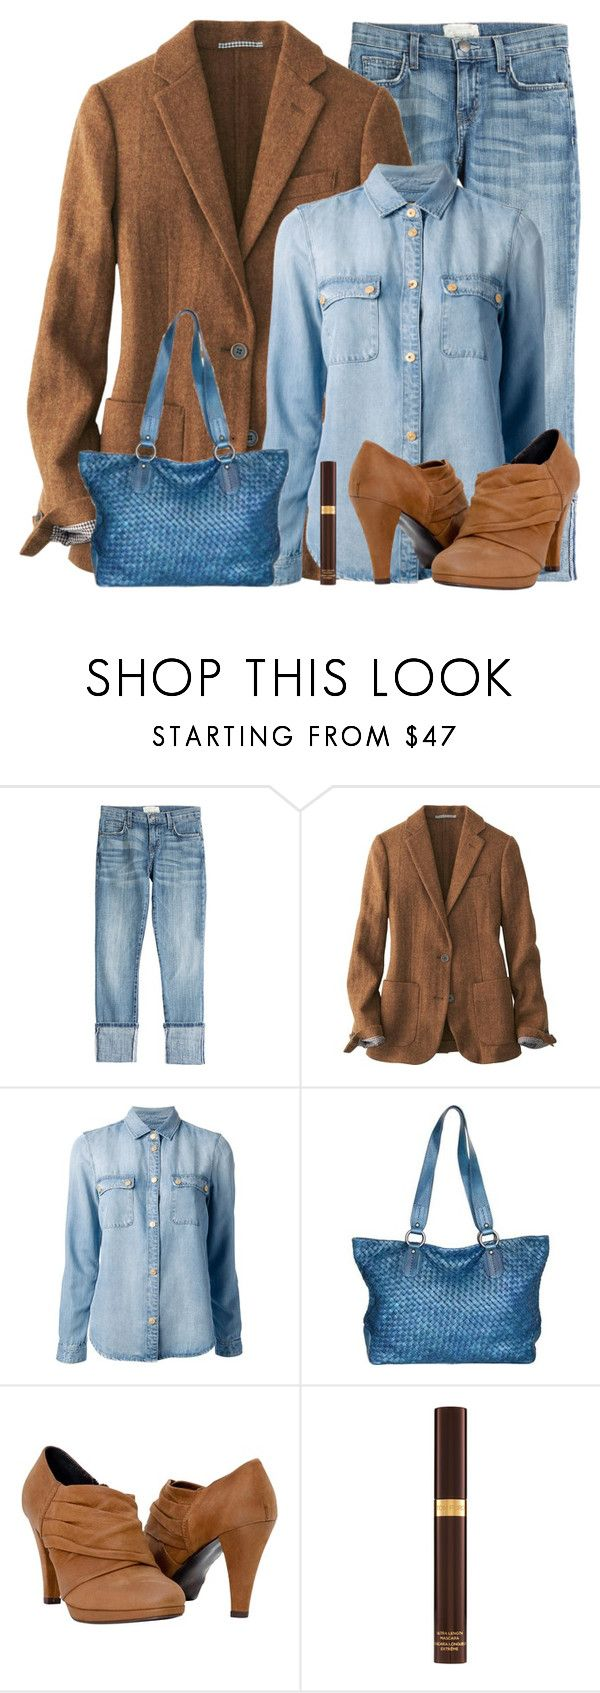 """Fall"" by vicky-soleil ❤ liked on Polyvore featuring Current/Elliott, Uniqlo, 7 For All Mankind, Nino Bossi Handbags and Tom Ford"